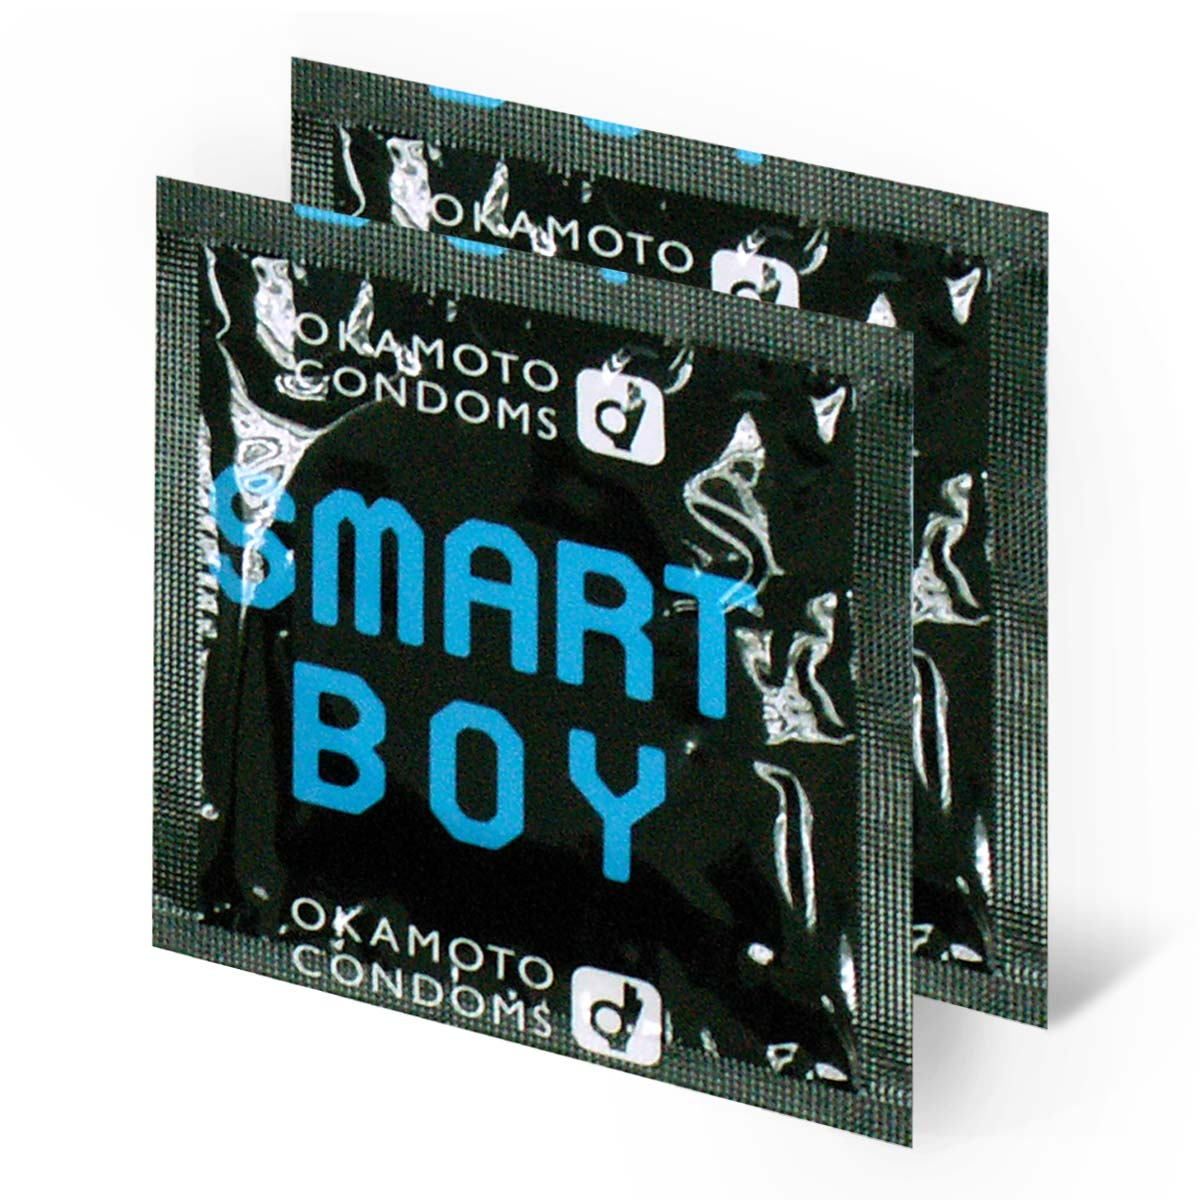 Smart Boy 49mm (Japan Edition) 2 pieces Latex Condom